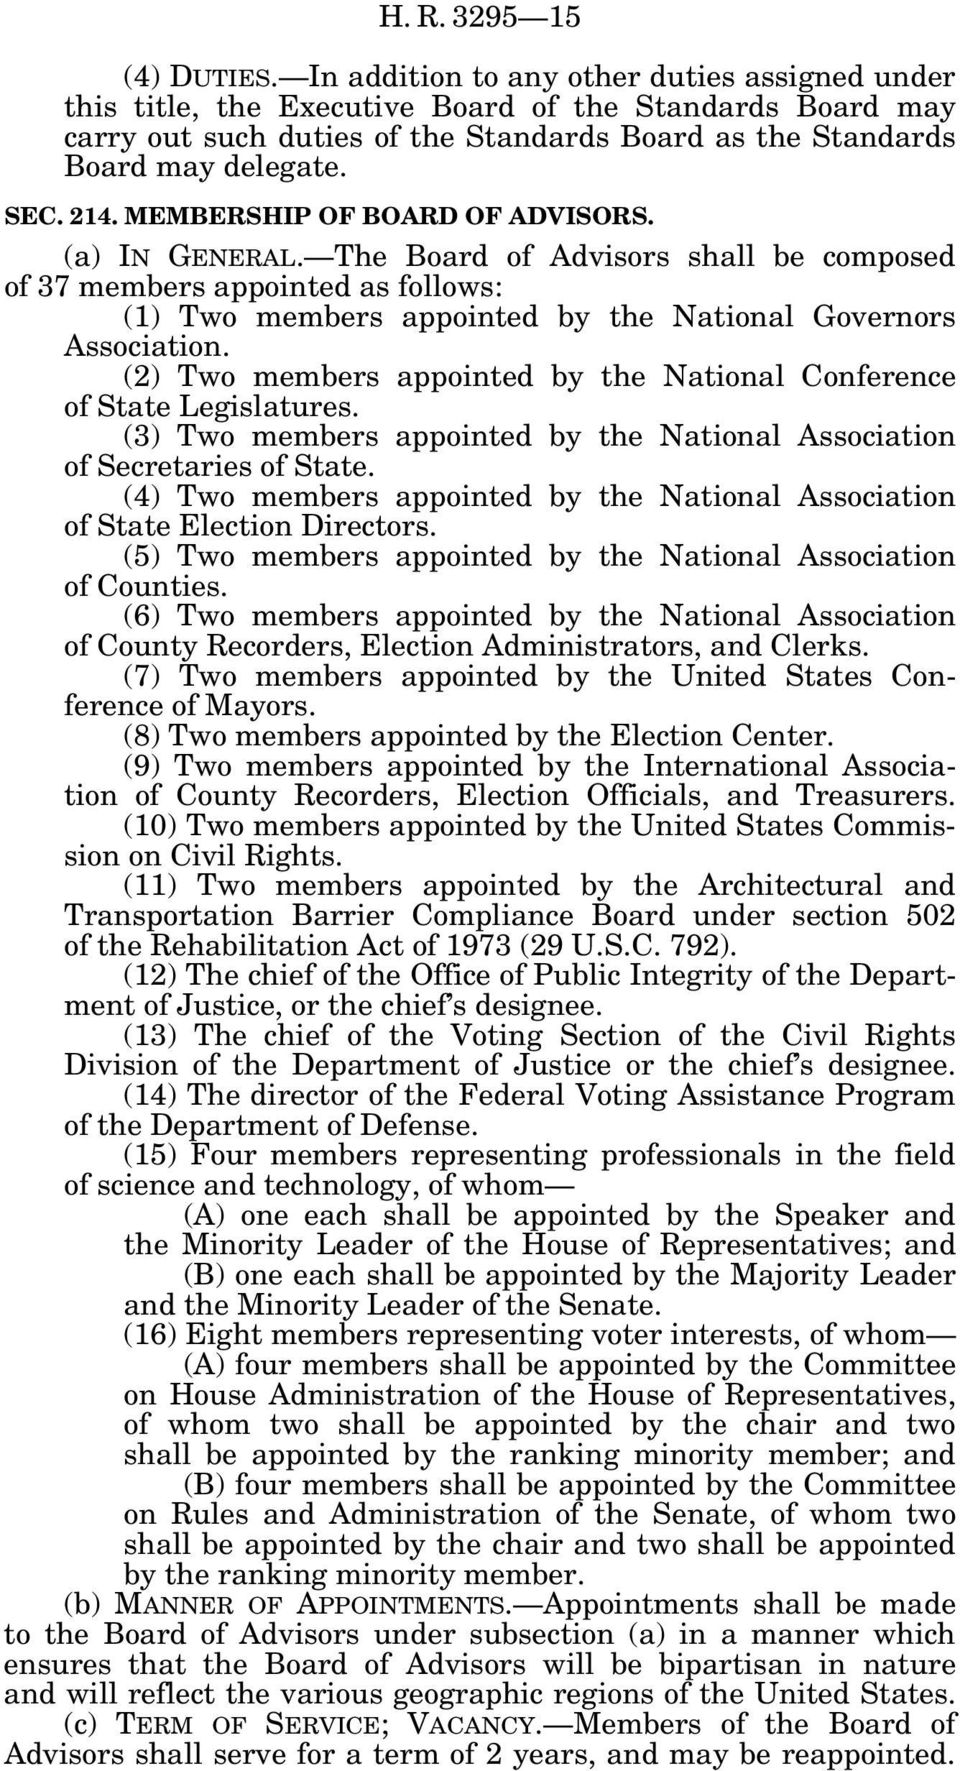 MEMBERSHIP OF BOARD OF ADVISORS. (a) IN GENERAL. The Board of Advisors shall be composed of 37 members appointed as follows: (1) Two members appointed by the National Governors Association.